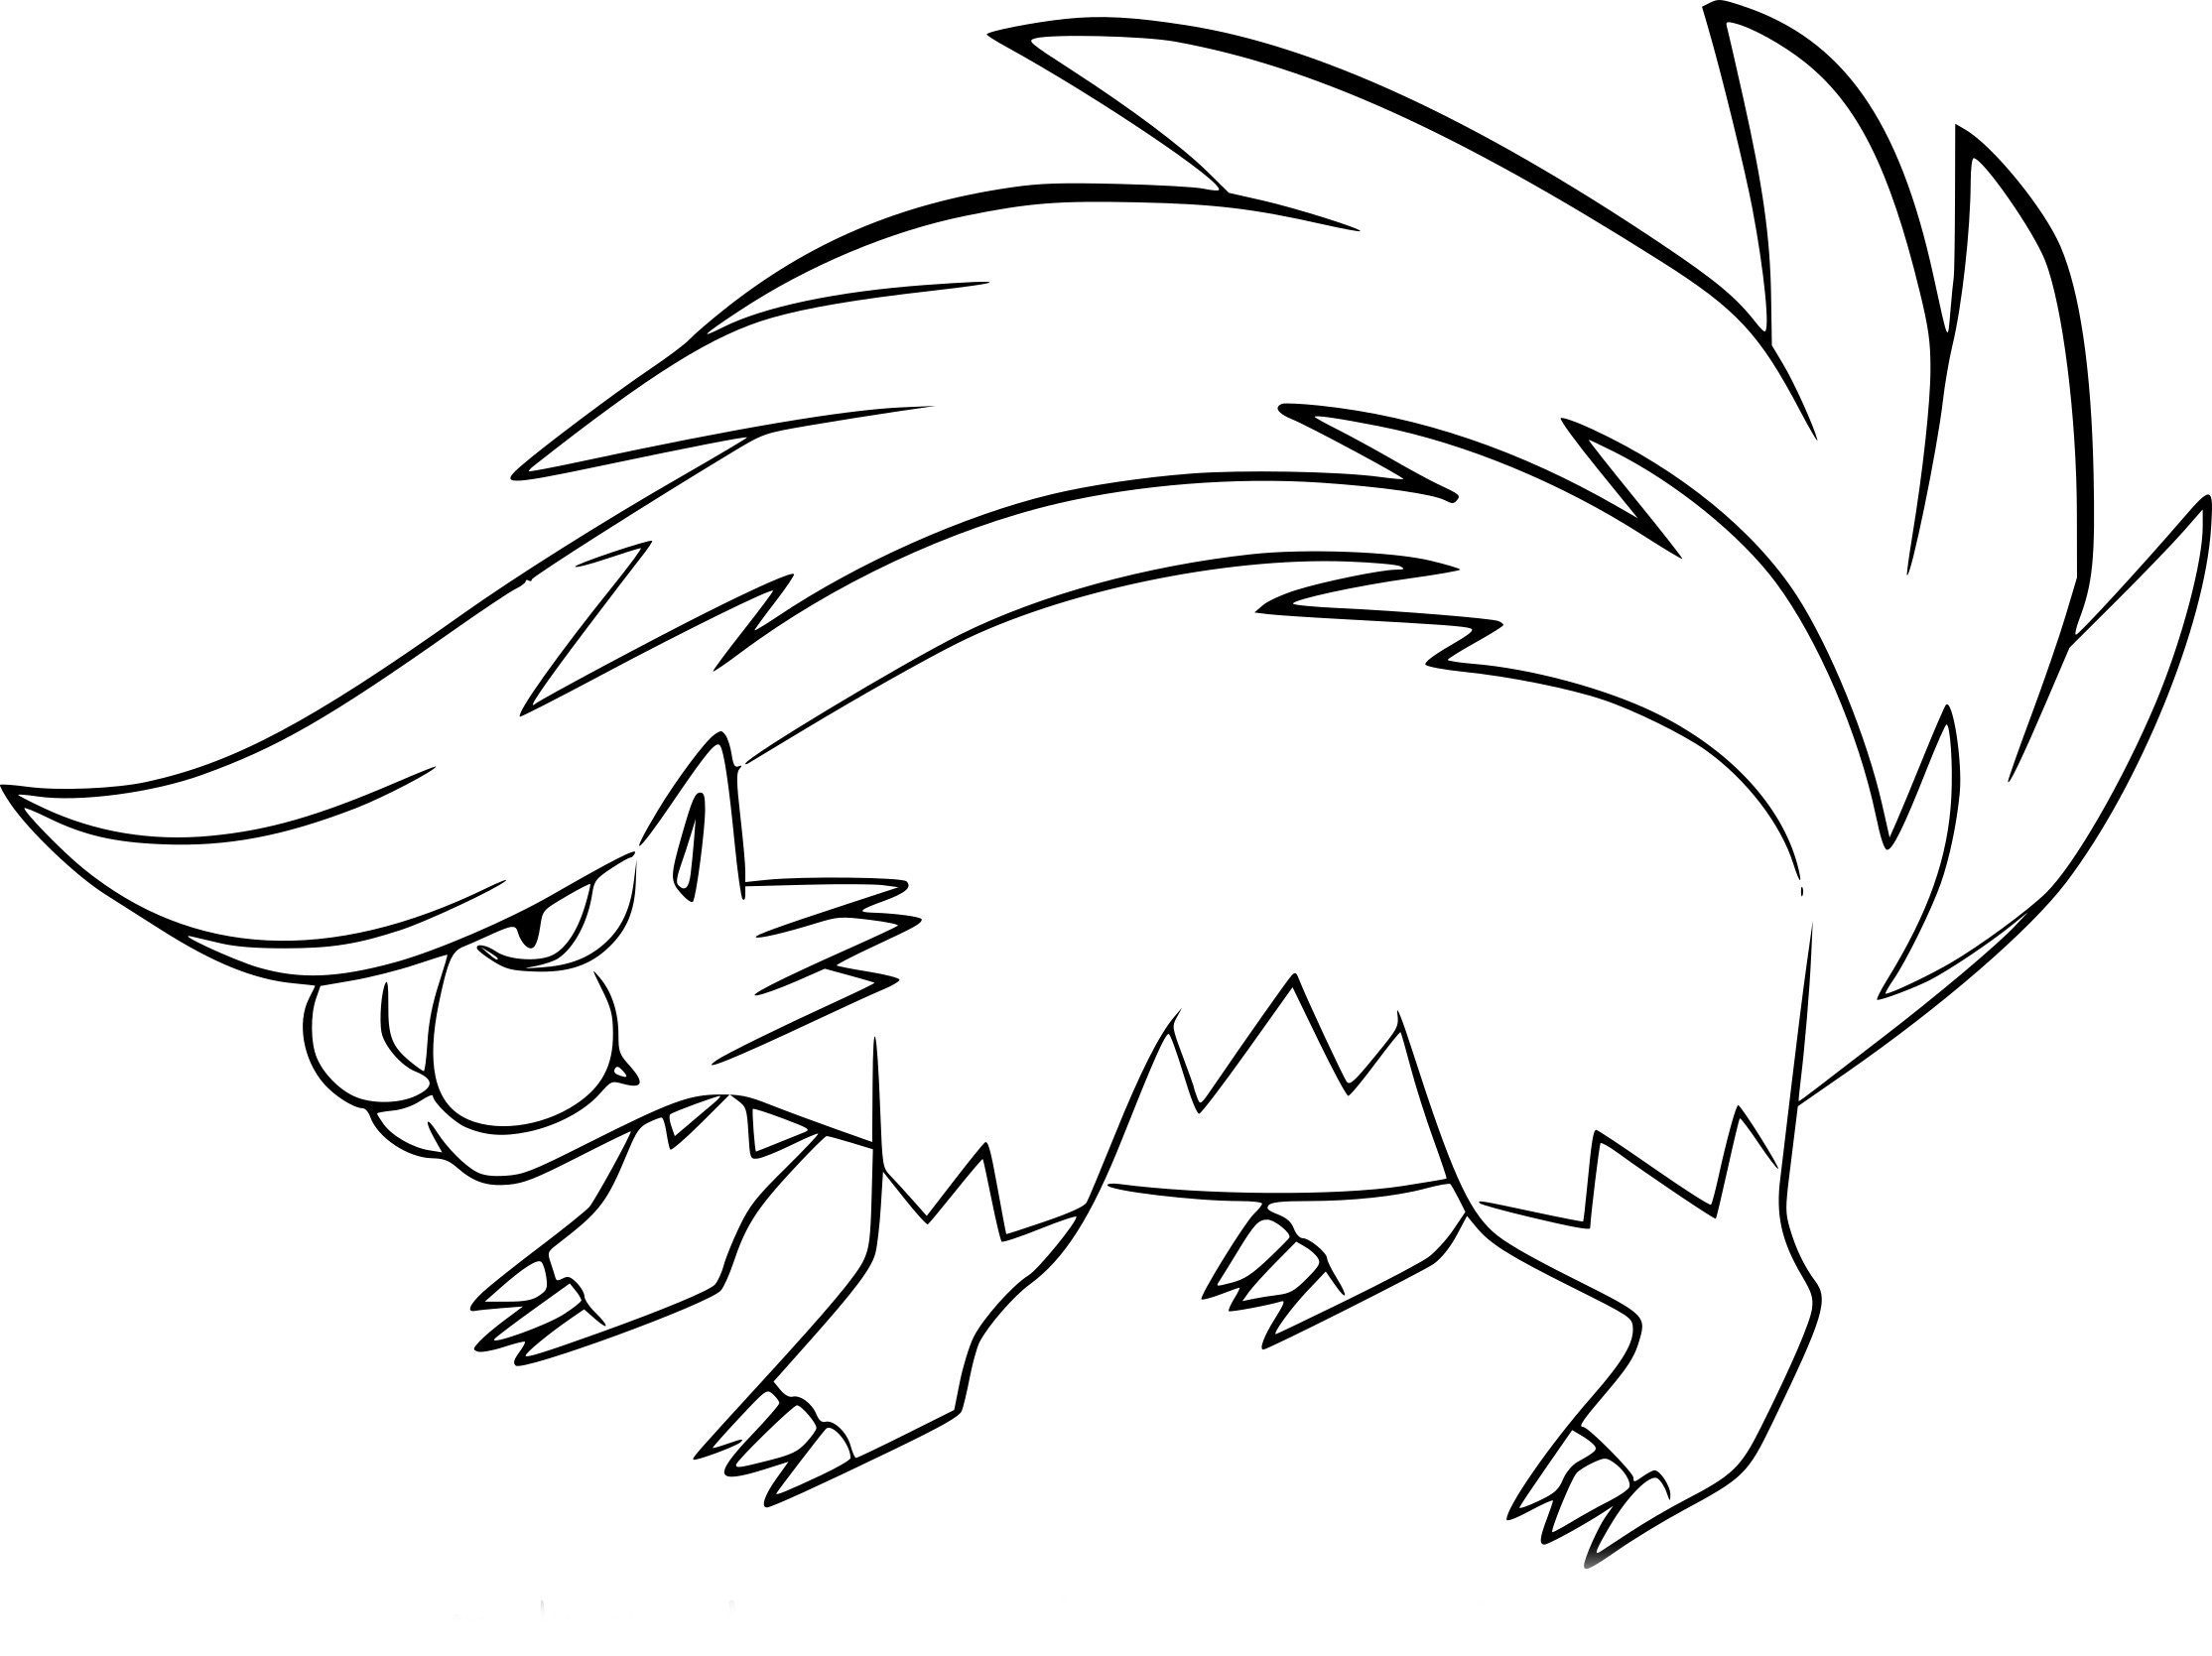 Coloriage moufflair pokemon imprimer - Coloriage diddl a imprimer ...